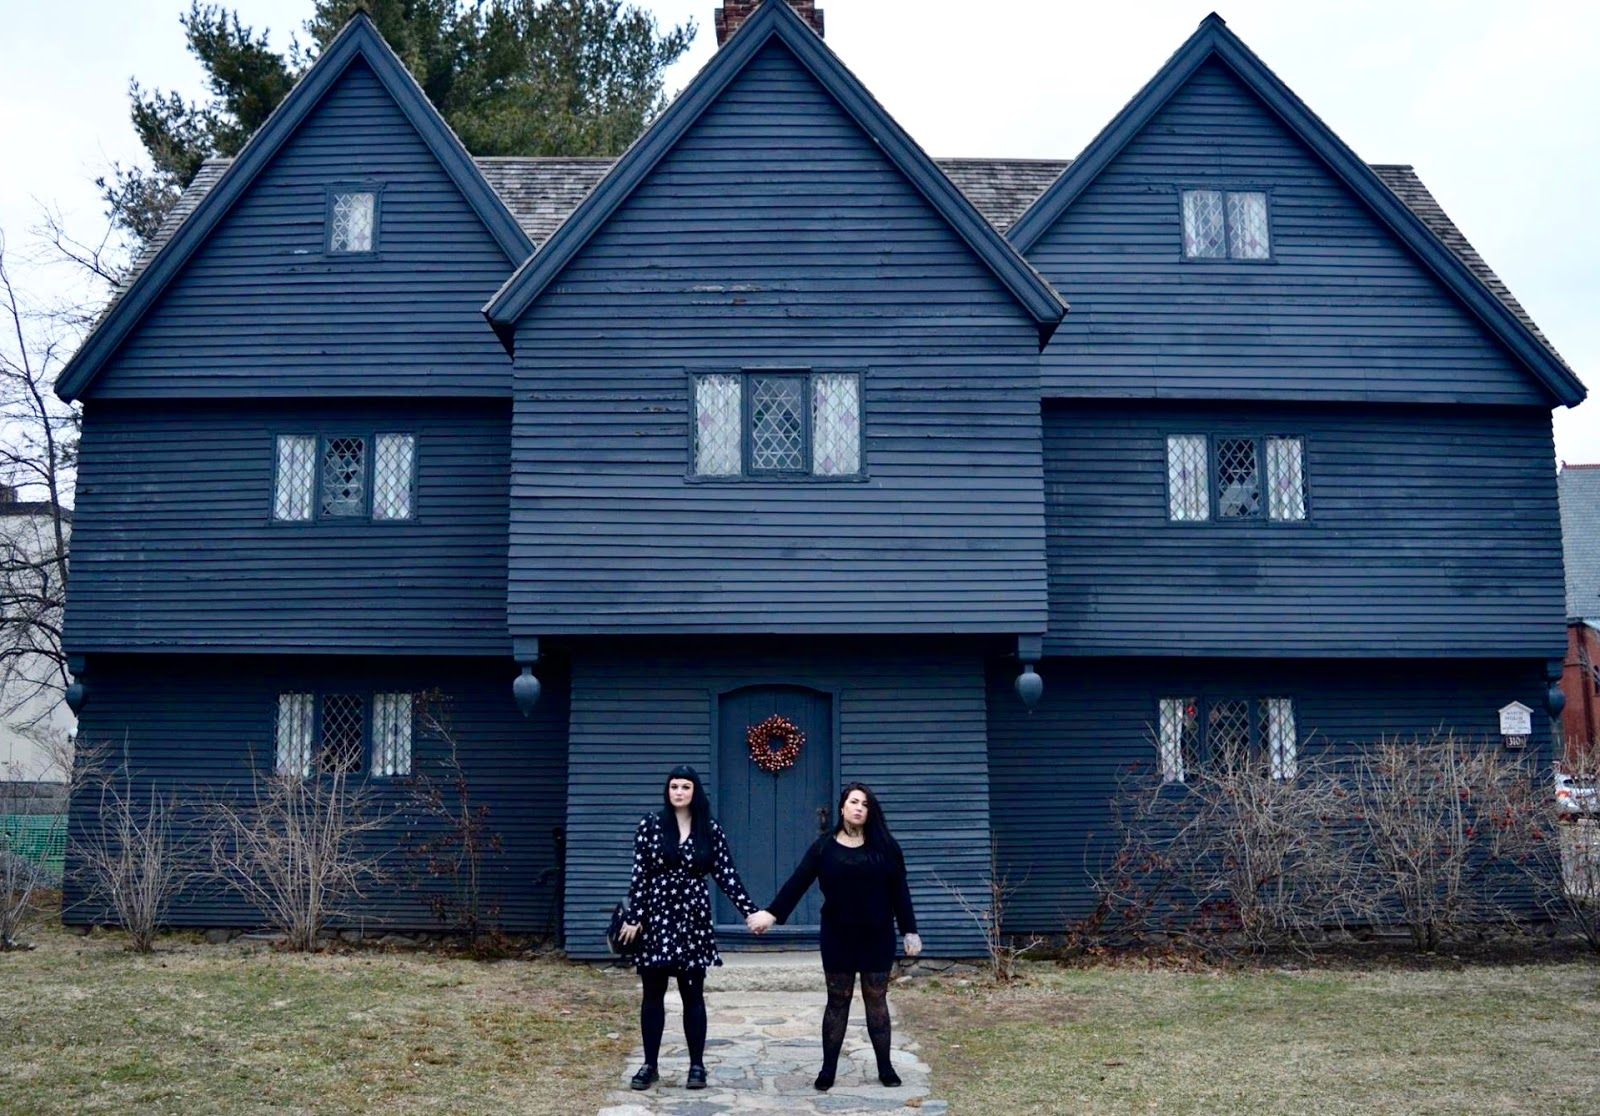 The Witch House, Salem